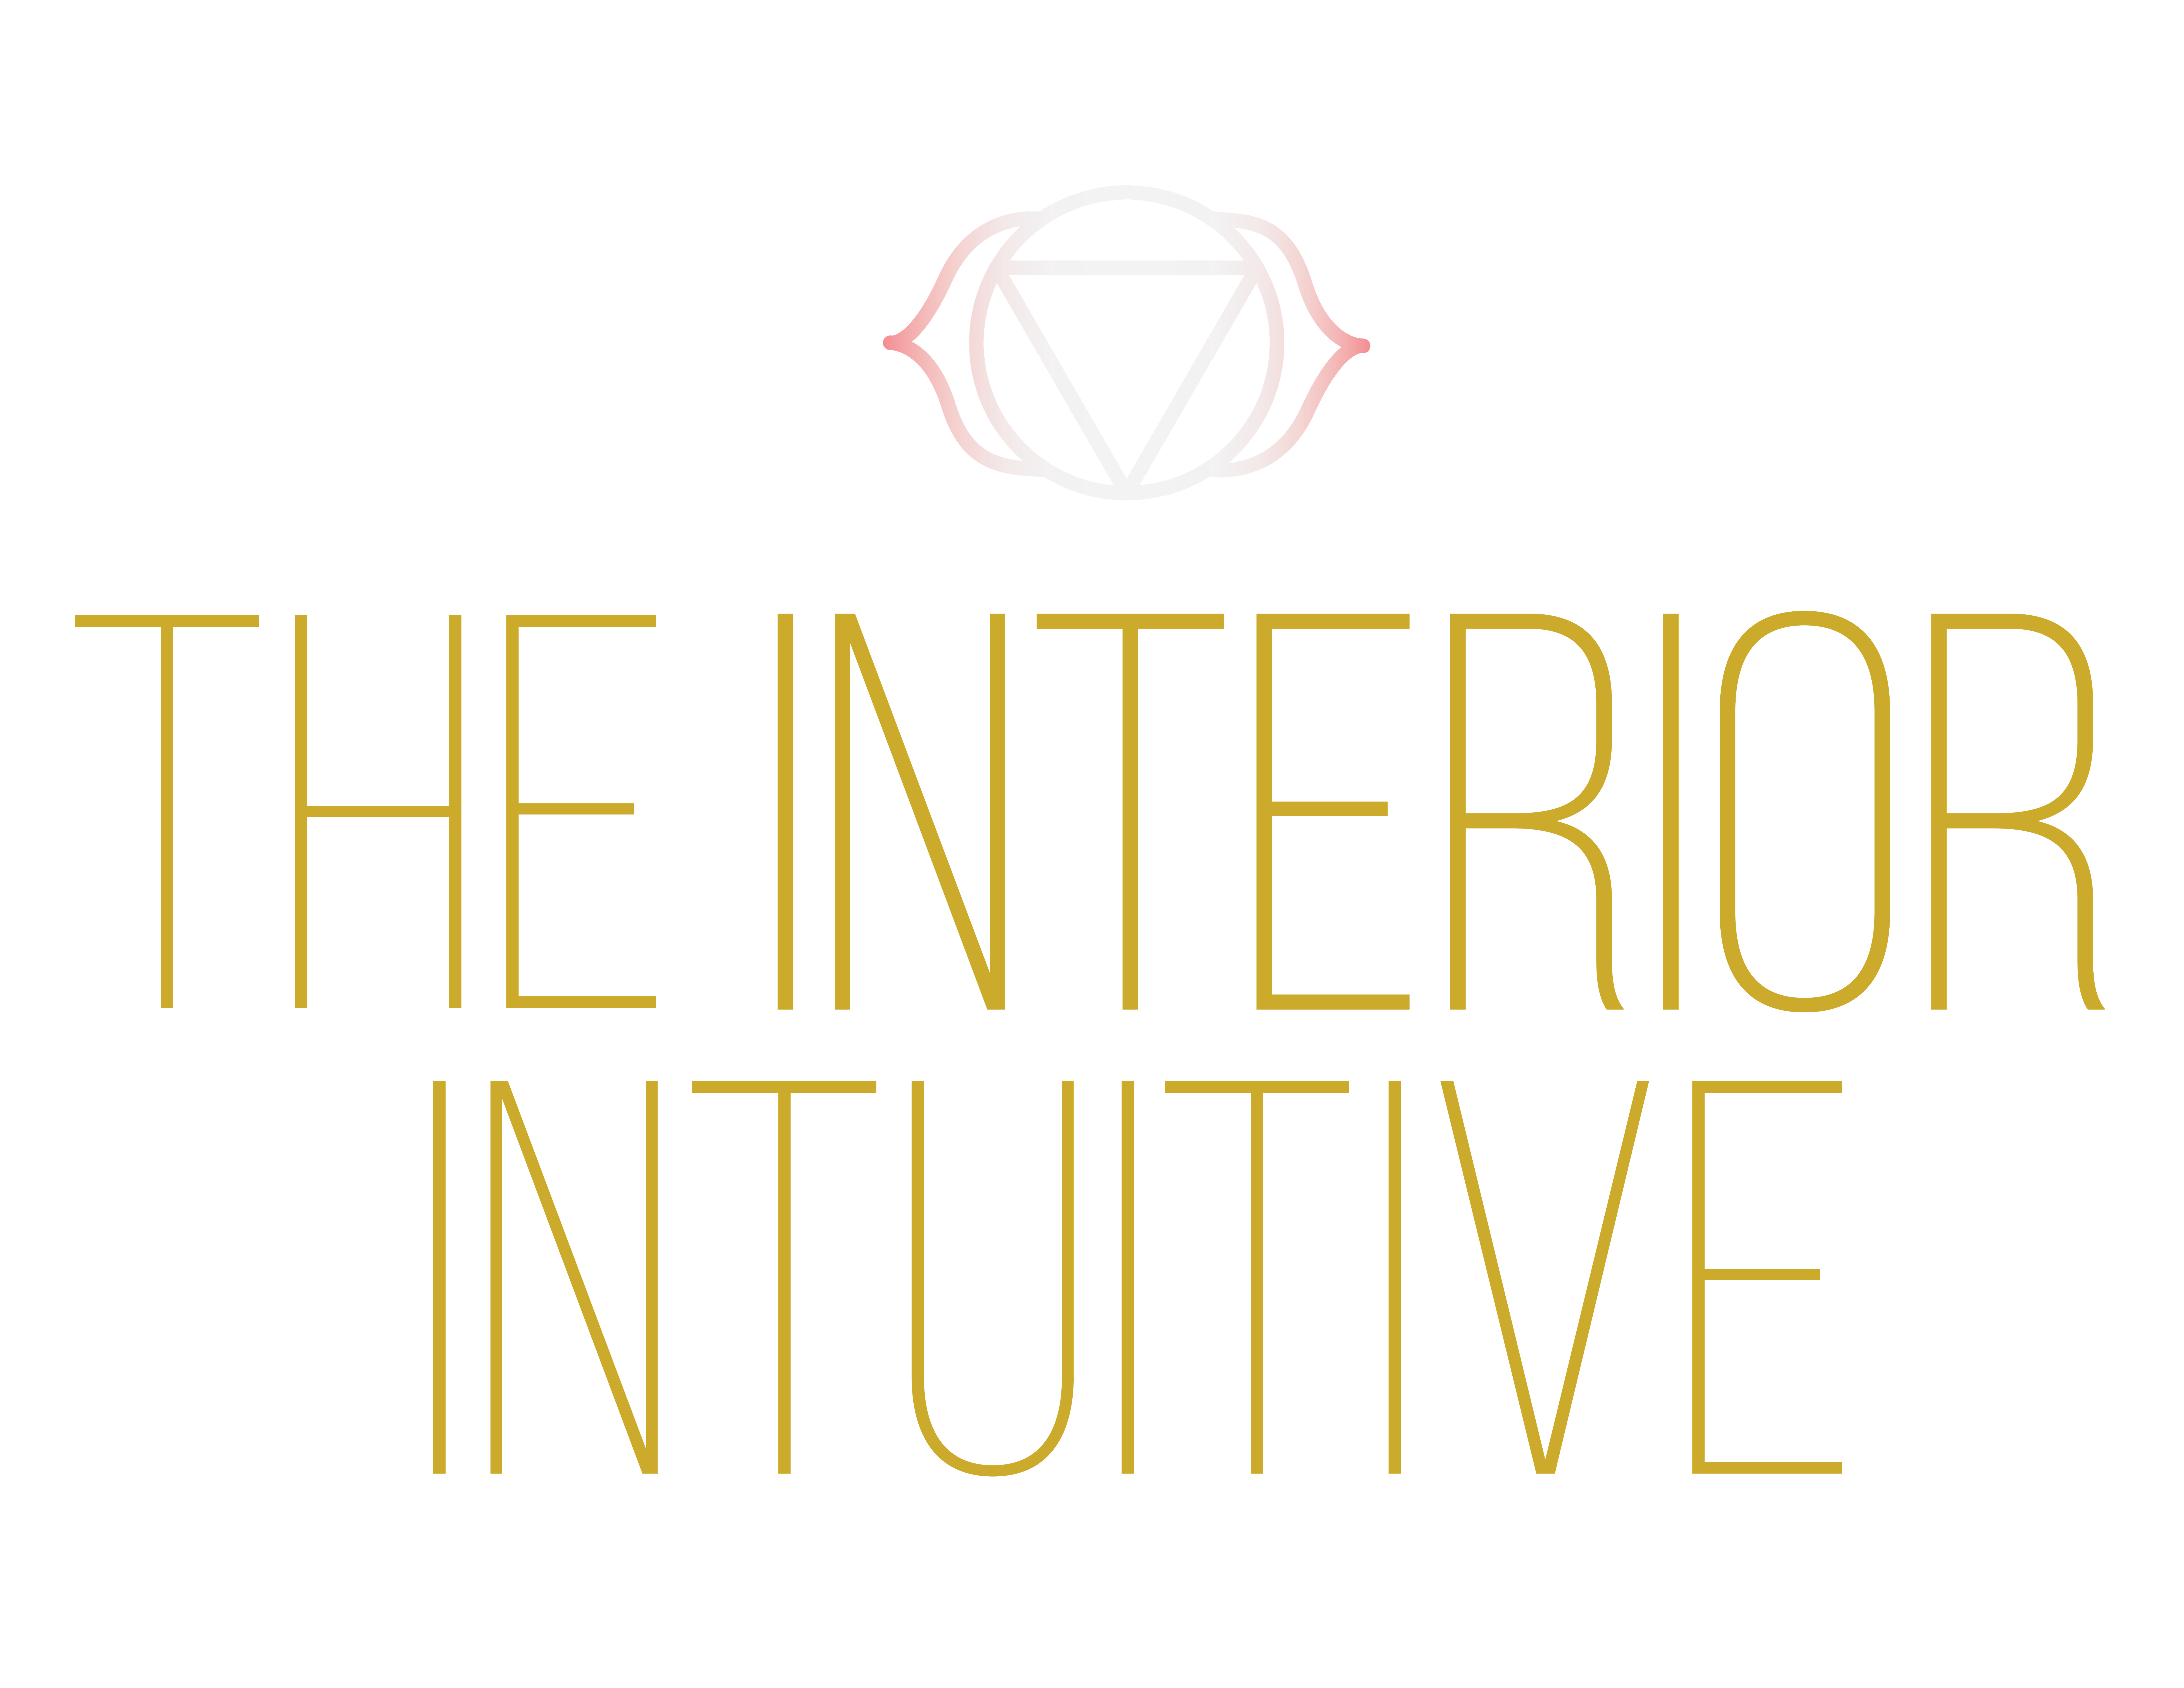 The Interior Intuitive